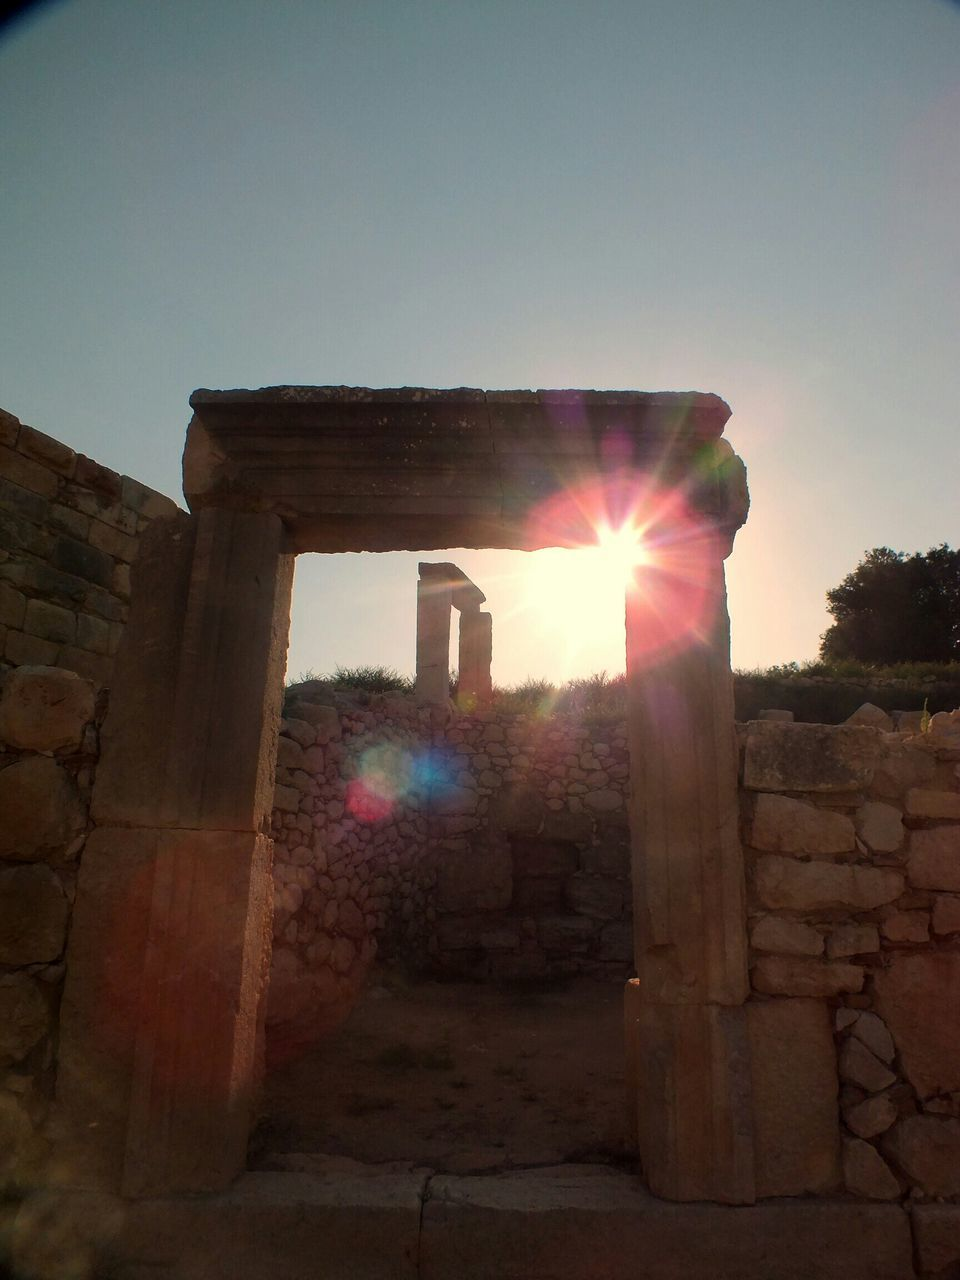 built structure, old ruin, architecture, sunbeam, sun, sunlight, history, lens flare, ancient, ancient civilization, building exterior, clear sky, no people, sunset, sky, outdoors, architectural column, day, travel destinations, nature